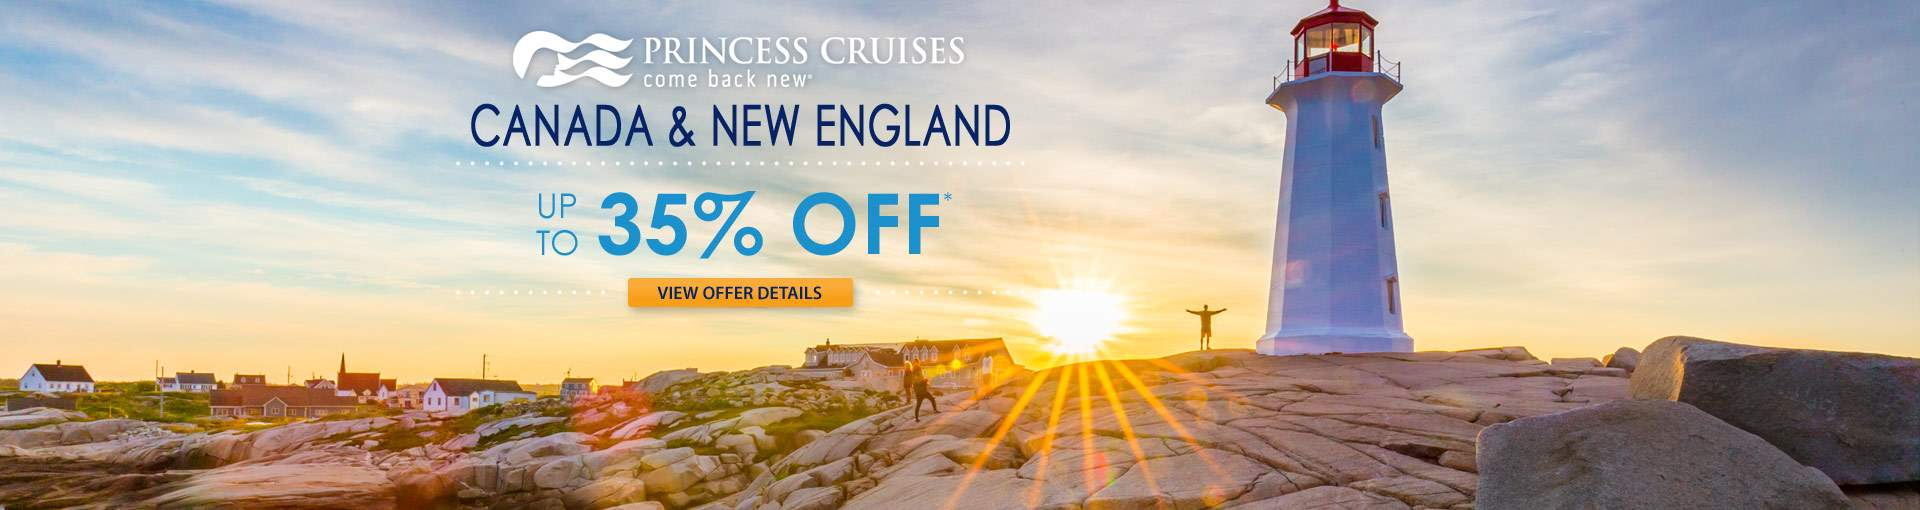 Princess Cruises to Canada: up to 35% Off